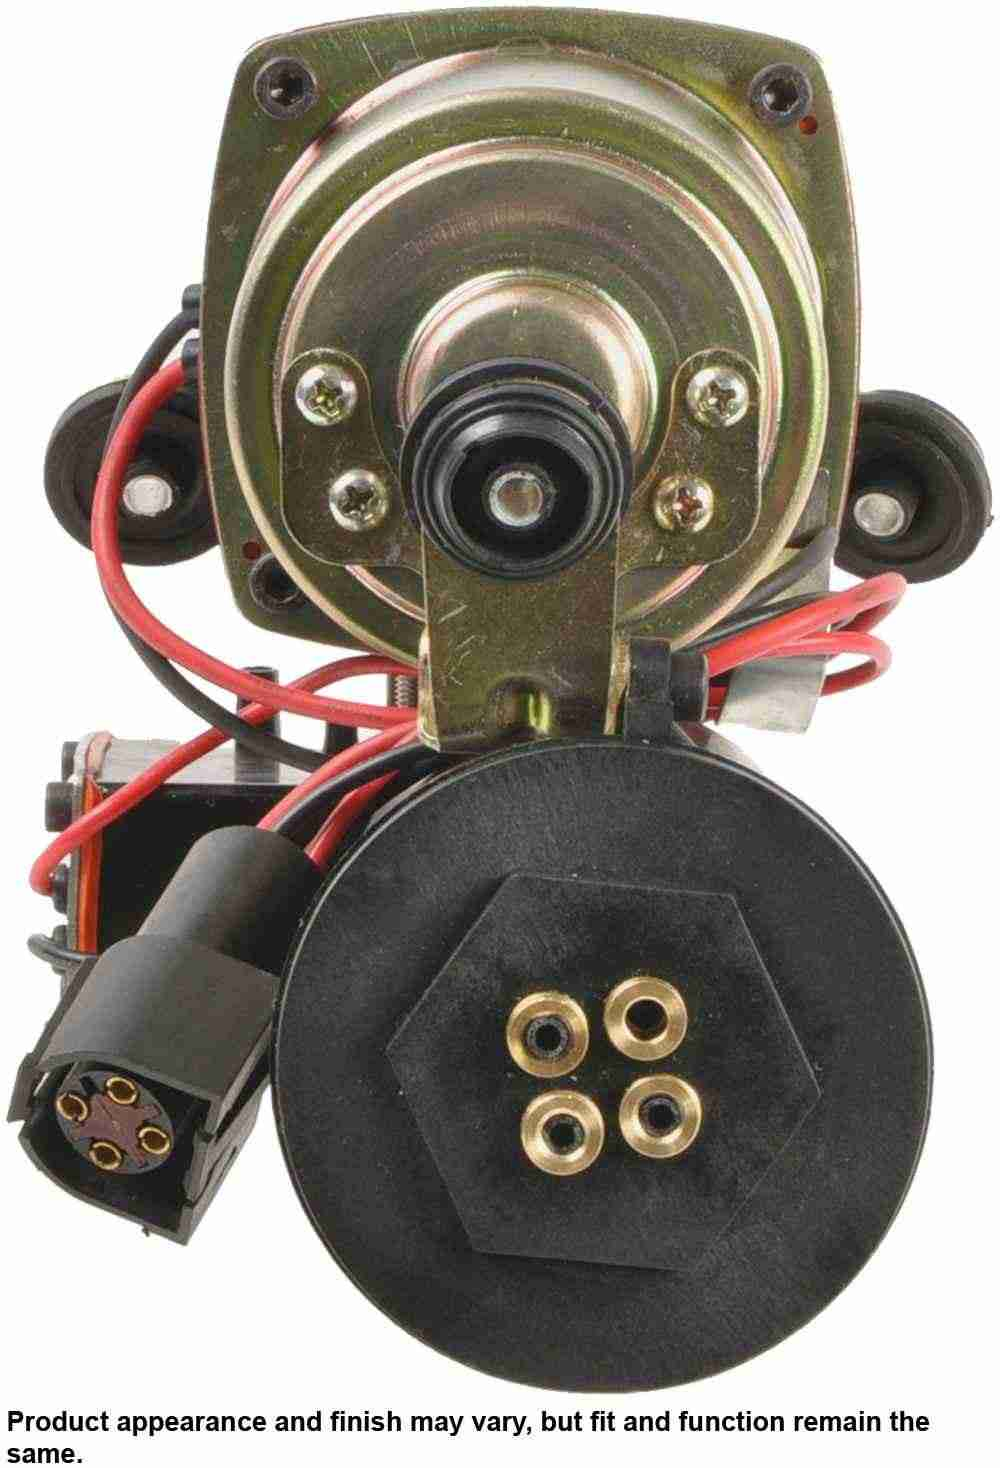 CARDONE/A-1 CARDONE - CARDONE Suspension Air Compressor - A1C 4J-1001C